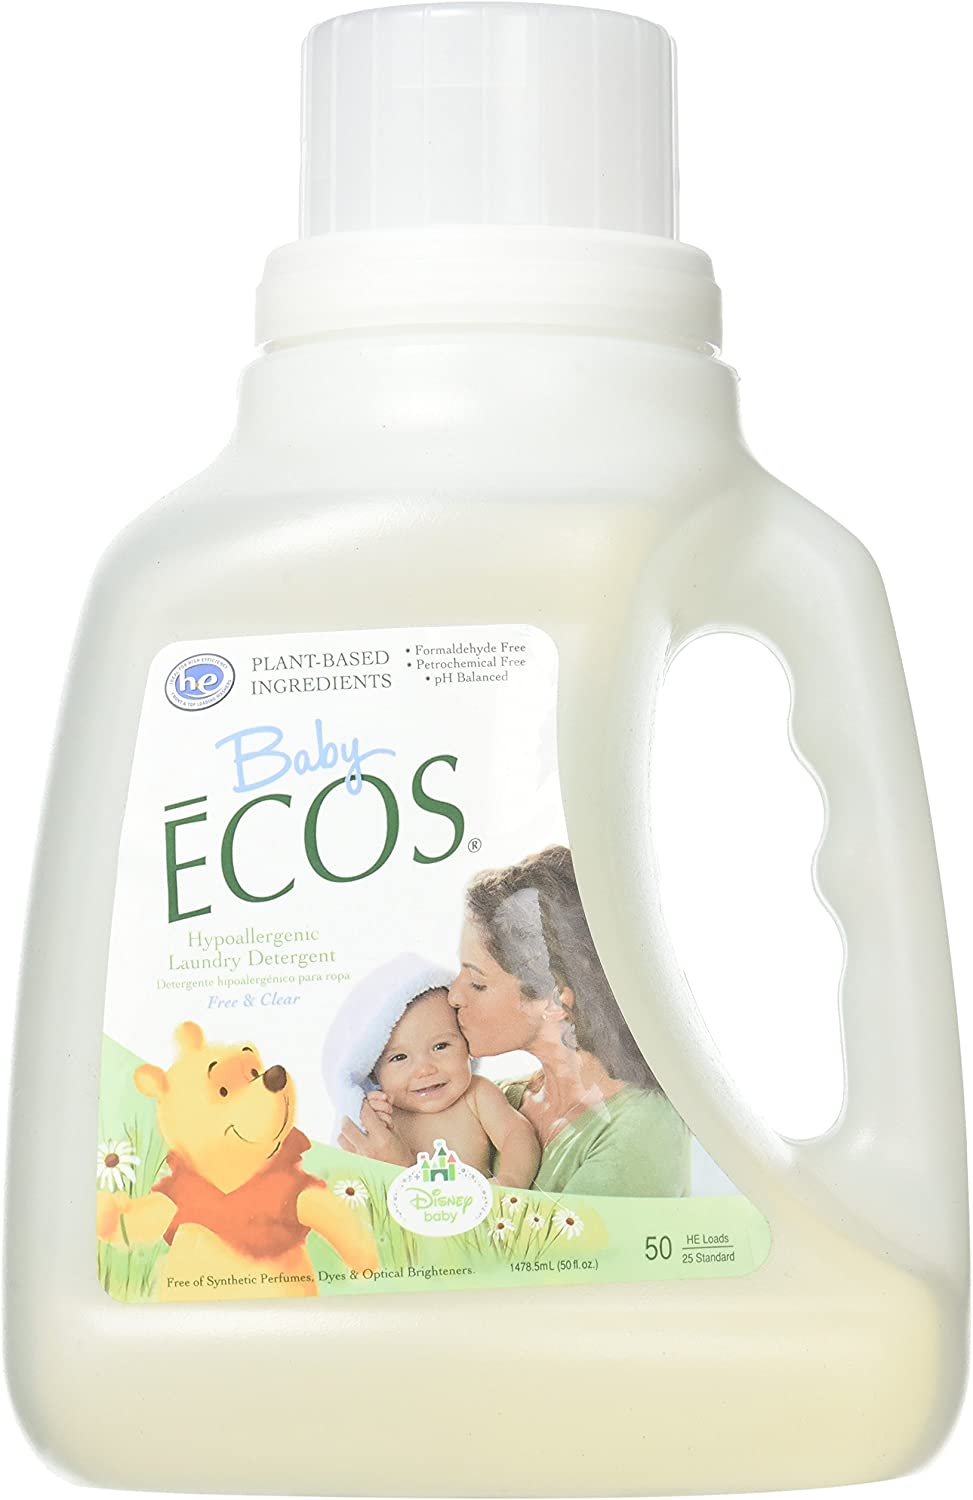 Earth Friendly bebé Ecos Disney lavandería detergente libre y ...